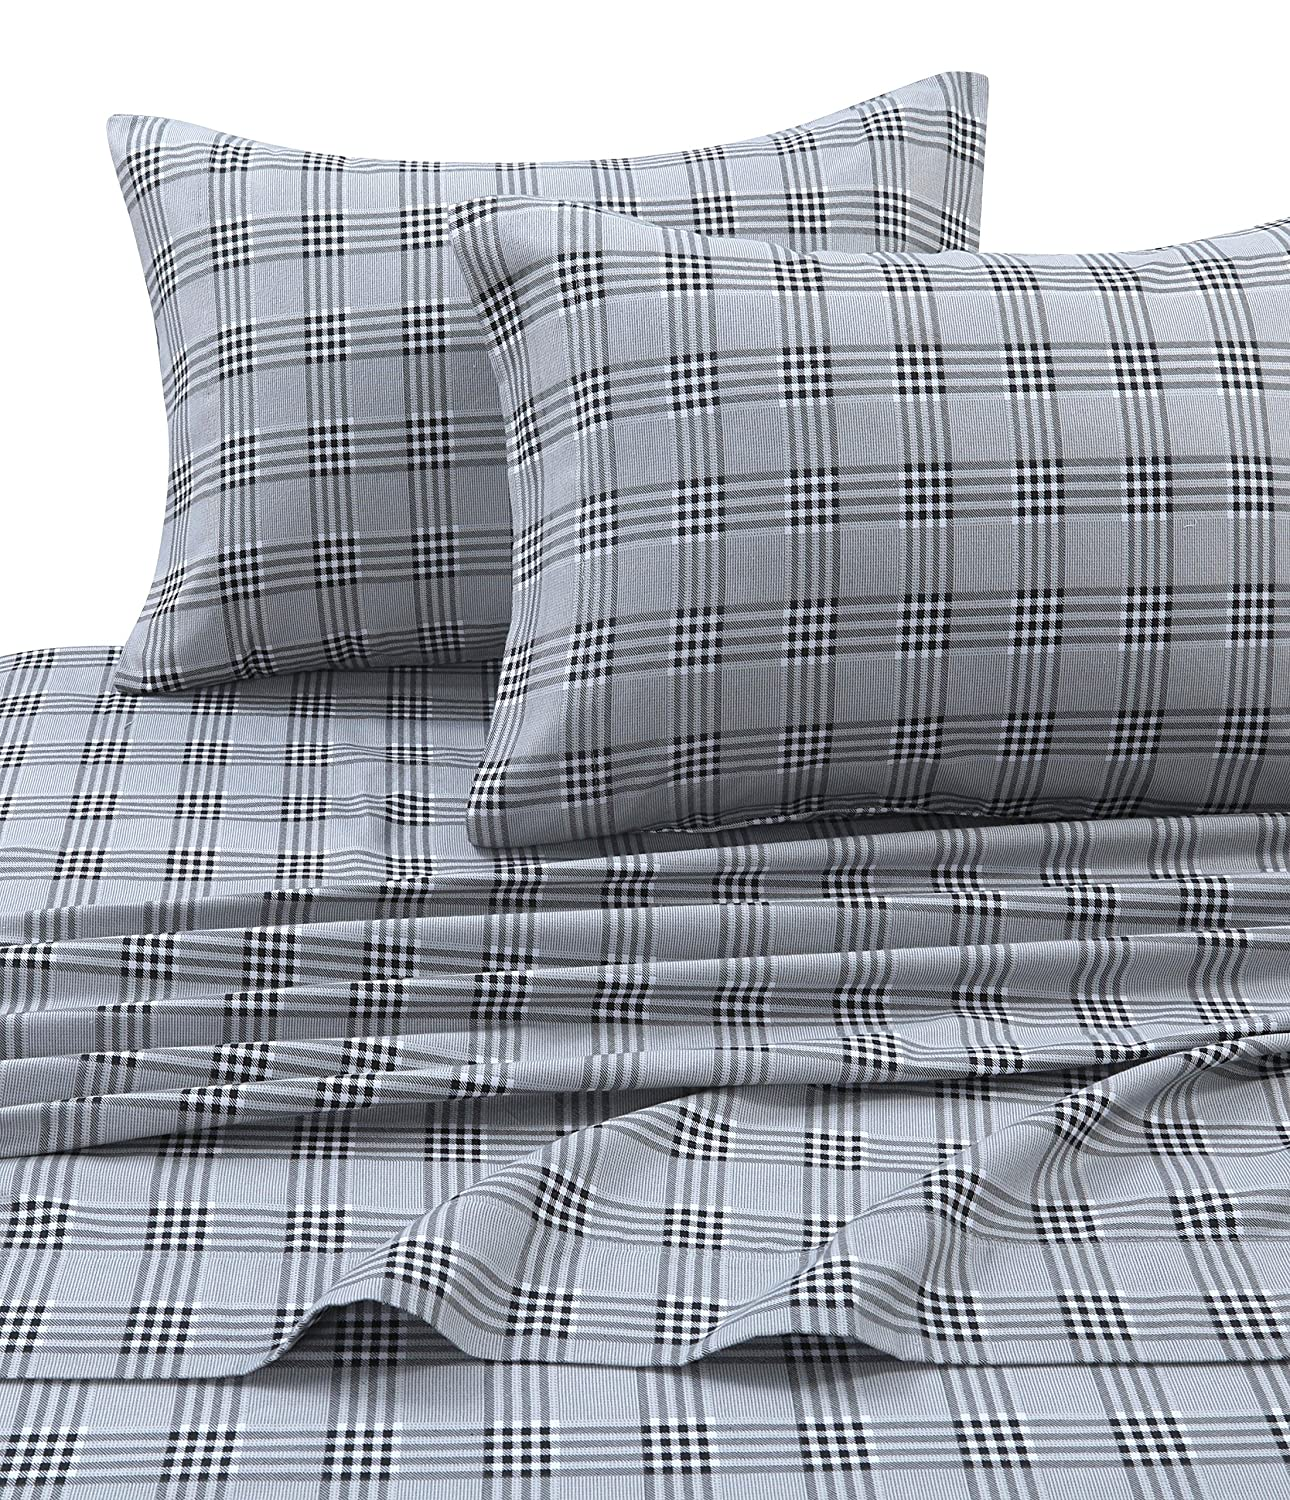 Tribeca Living SAVA170SHEETQU Savannah Plaid Flannel Deep Pocket Sheet Set, Queen, Multi